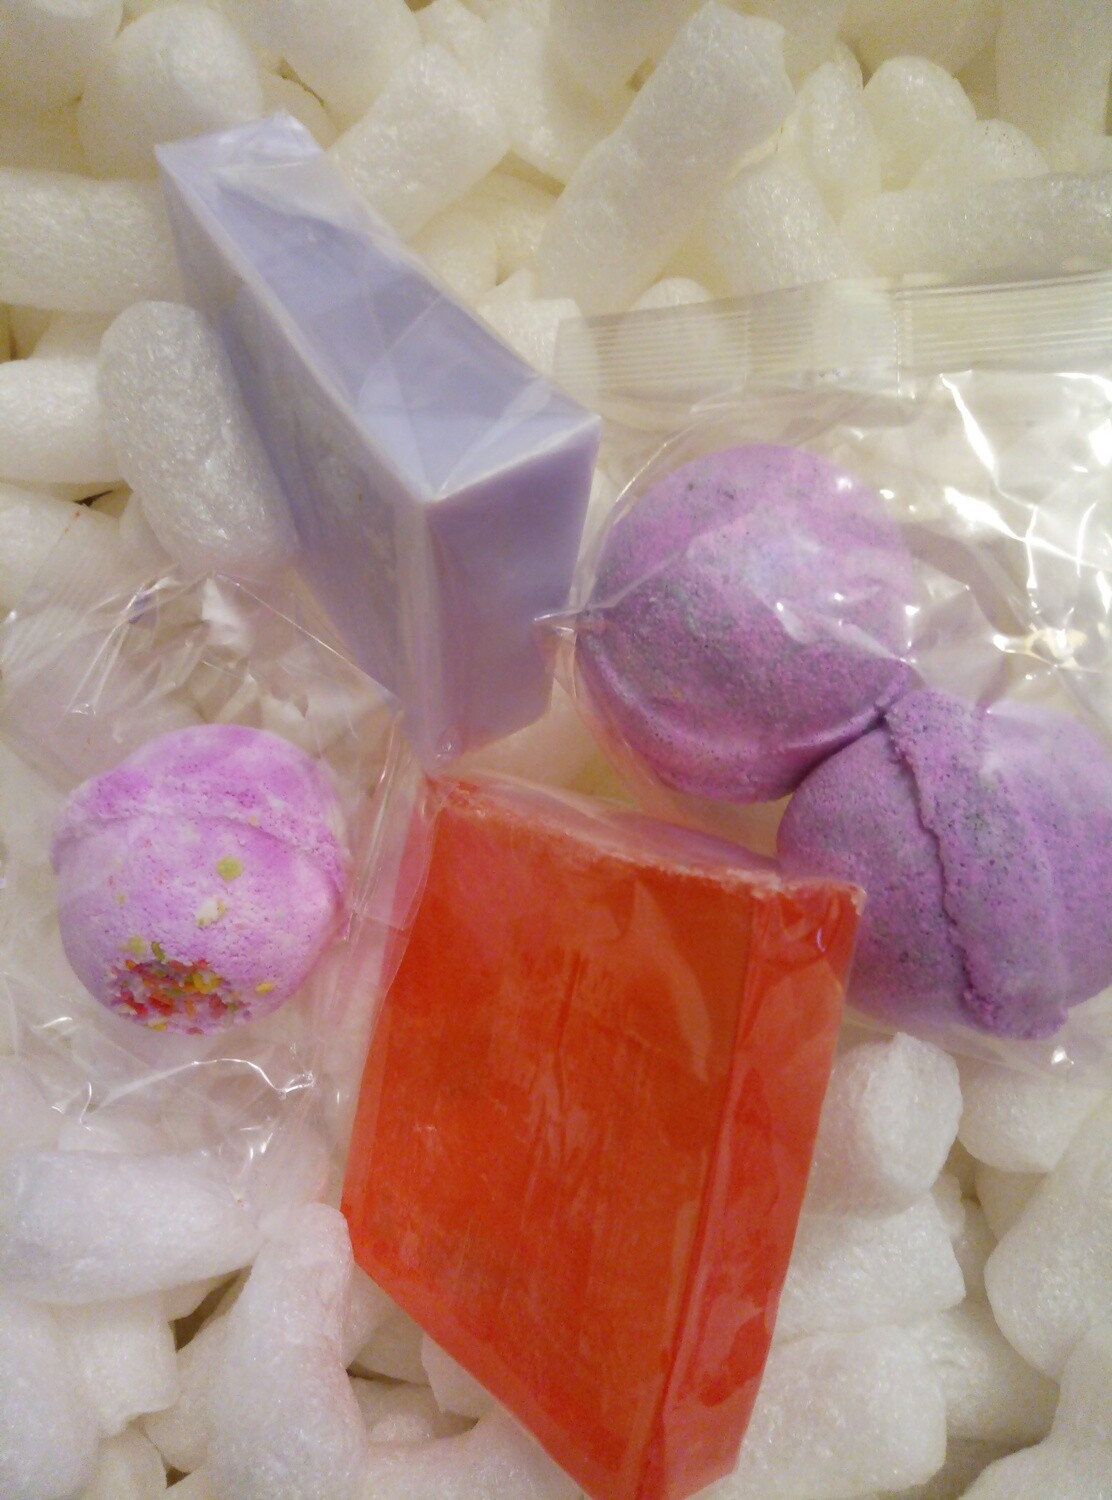 Cinnamon Soap, Solid Shampoo, (Lavender Essential Oil Scented) & 3 Mini Bath Bomb Pack